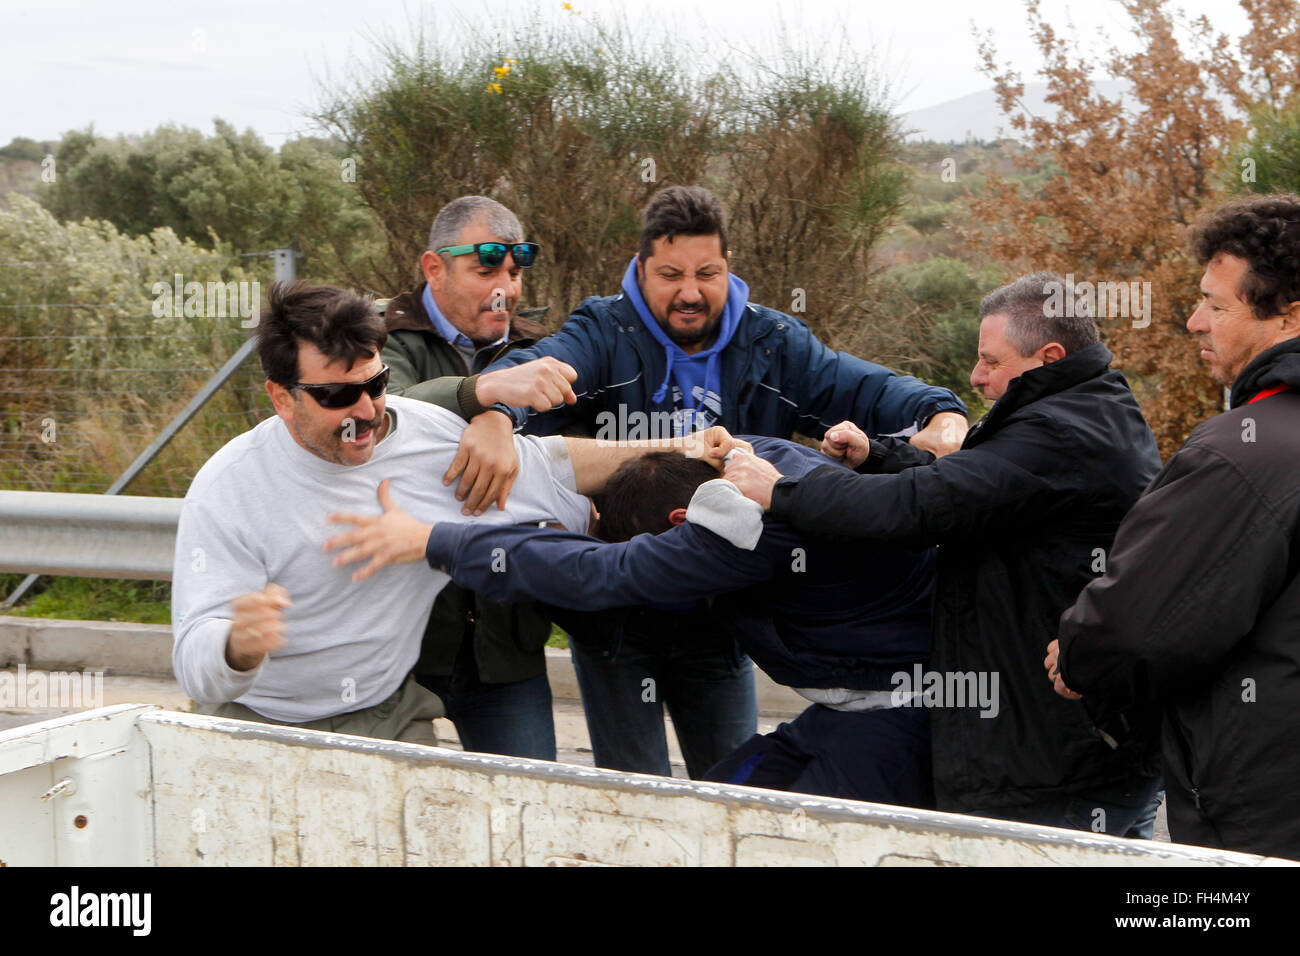 Greek drivers fight in the street - Stock Image